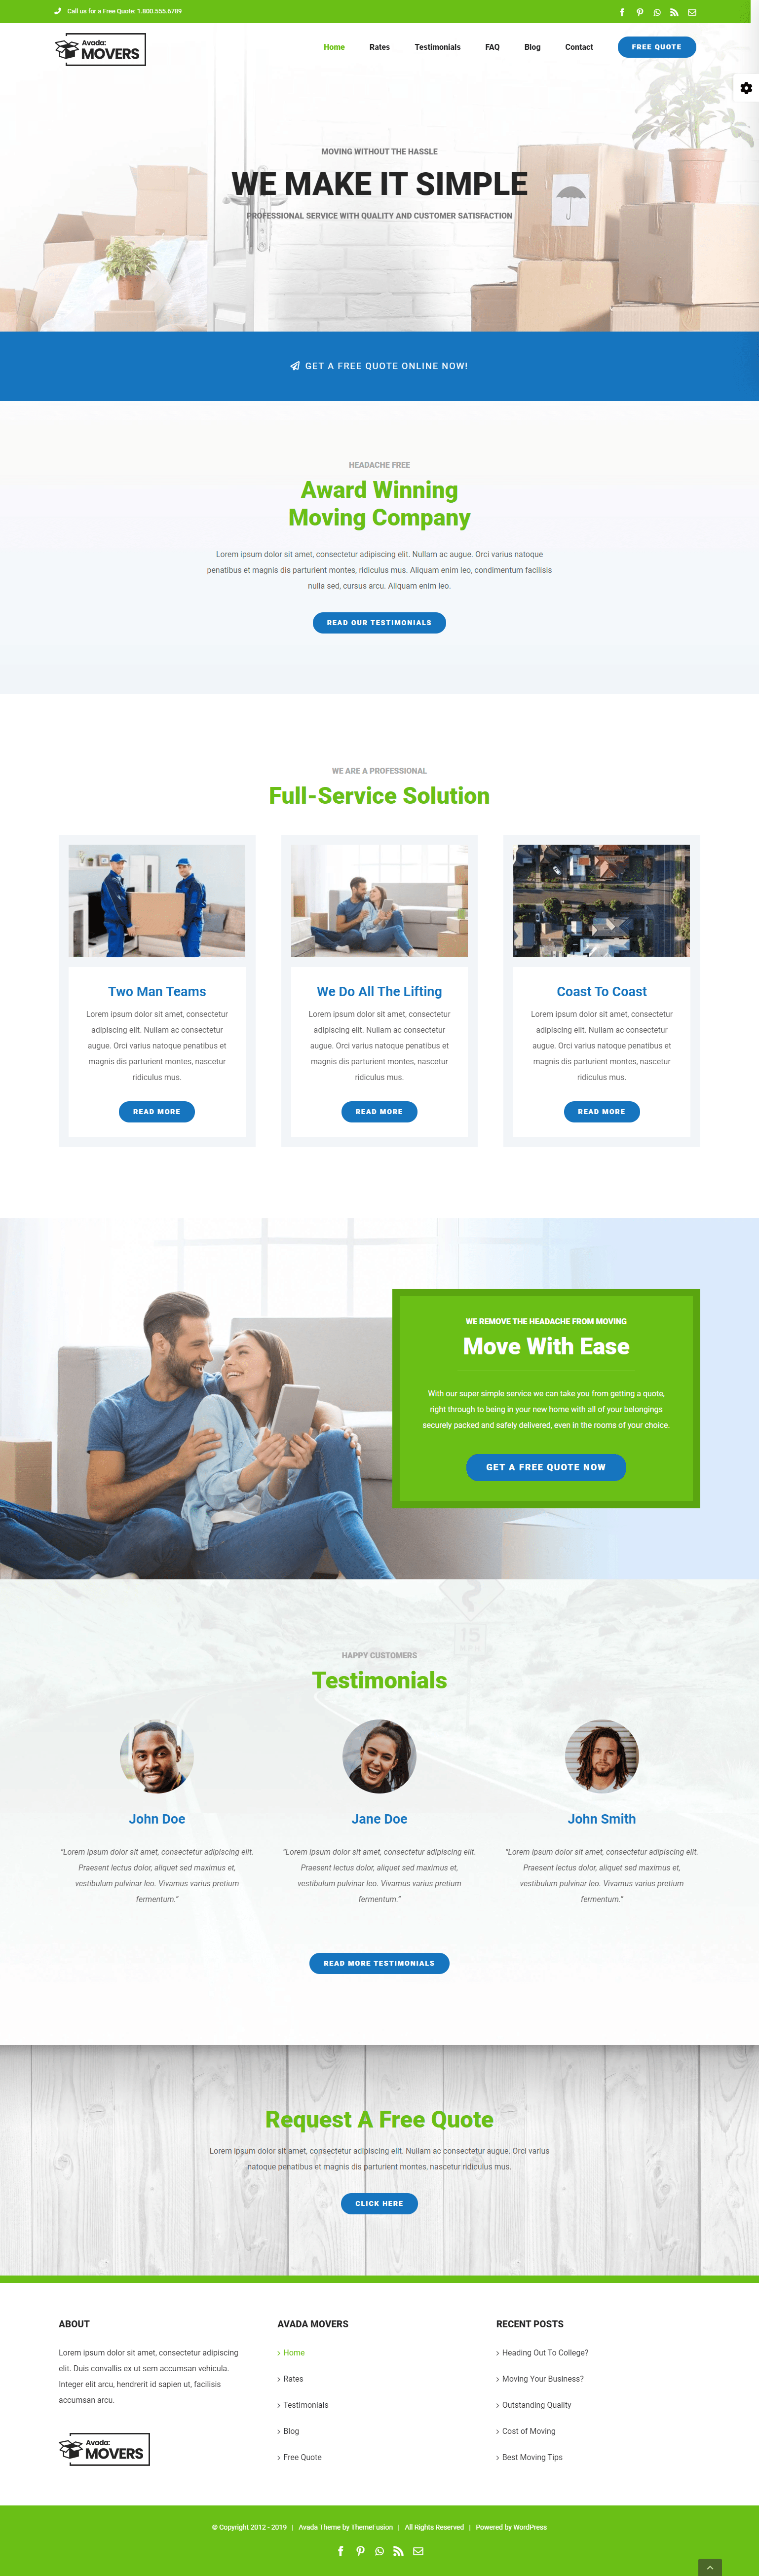 Giao diện thiết kế website Landing page Movers - Website vận chuyển Logistic